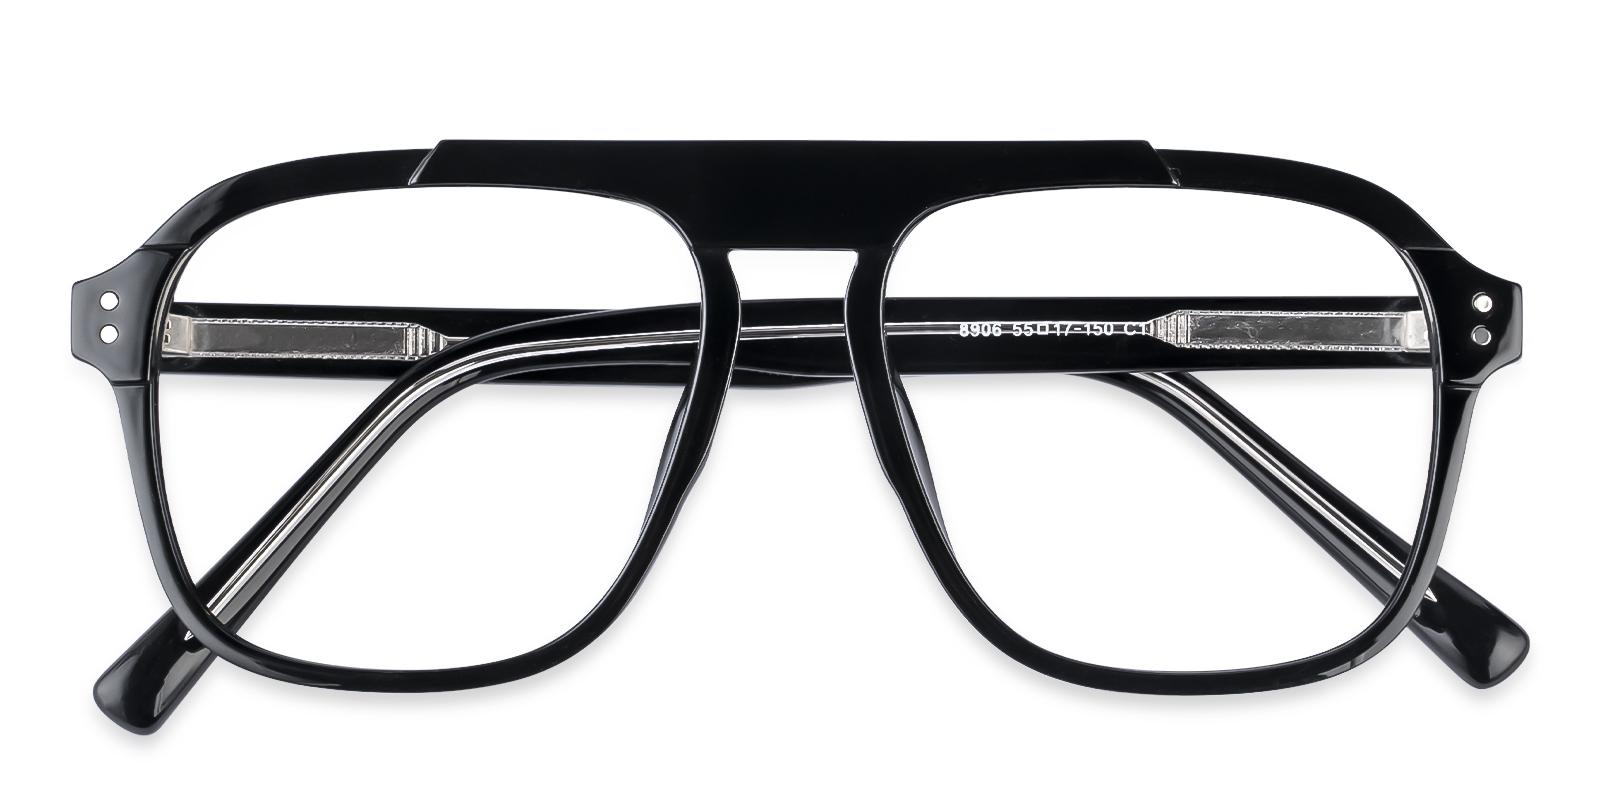 Hijinks Black  Eyeglasses , UniversalBridgeFit Frames from ABBE Glasses